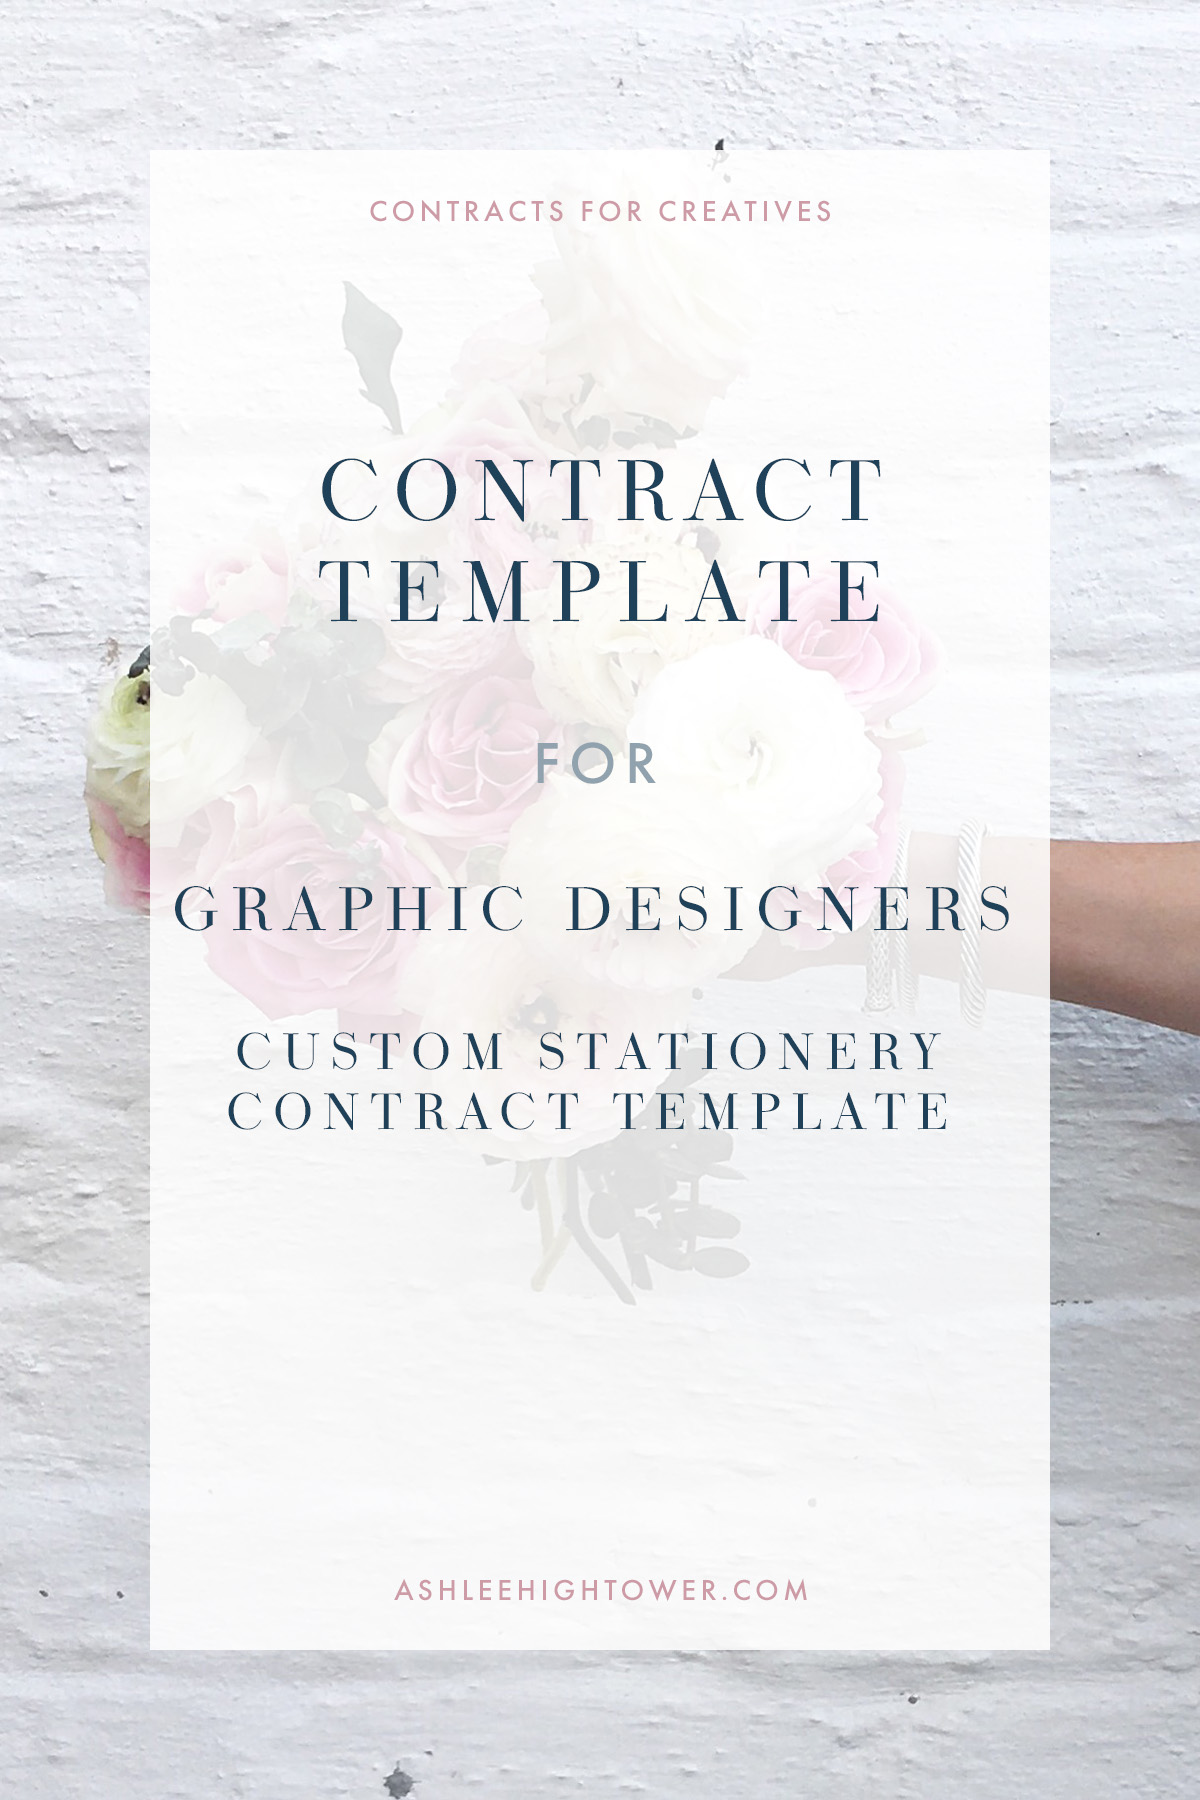 Custom Stationery Contract Template | Contracts for Creatives | Ashlee Hightower